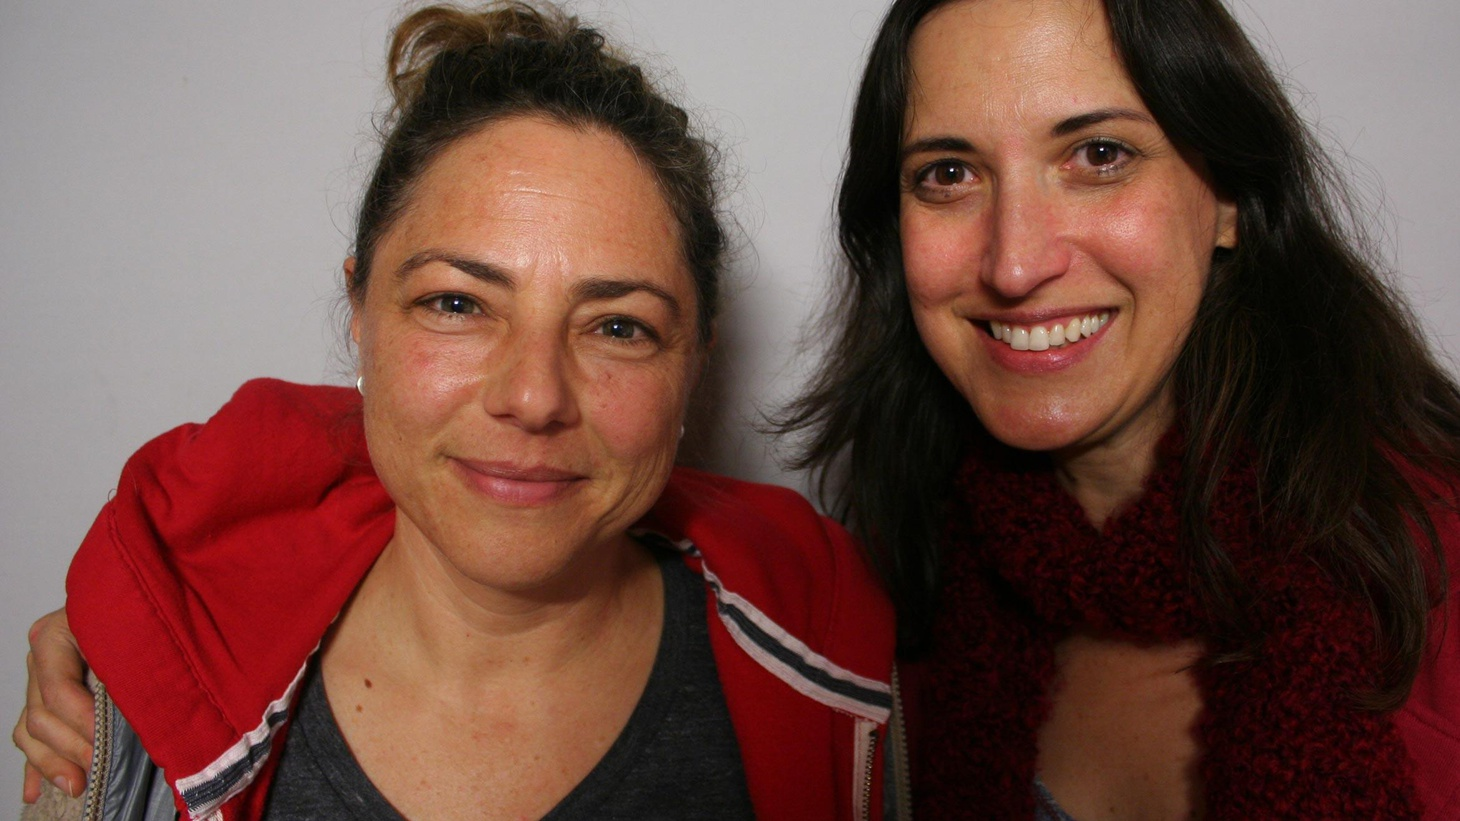 Andrea Stern tells her friend Stephanie Howard about how surviving brain surgery gave Andrea a much greater appreciation for the moments and memories of daily life.